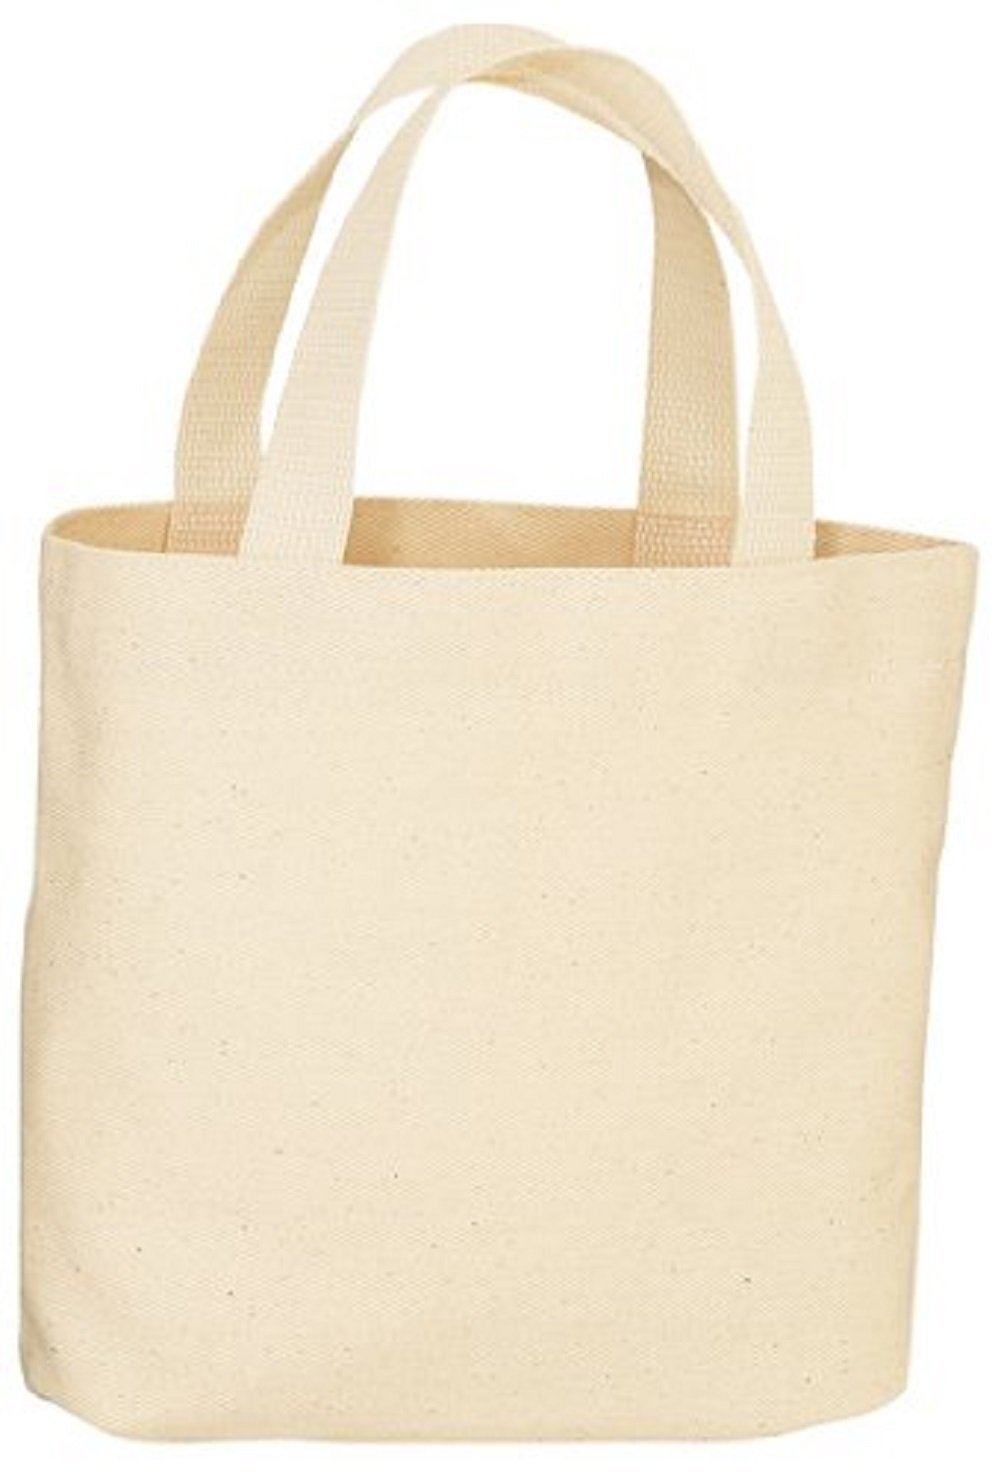 60 Darice Canvas Tote Bags Bag Craft Designer Canvas Collection